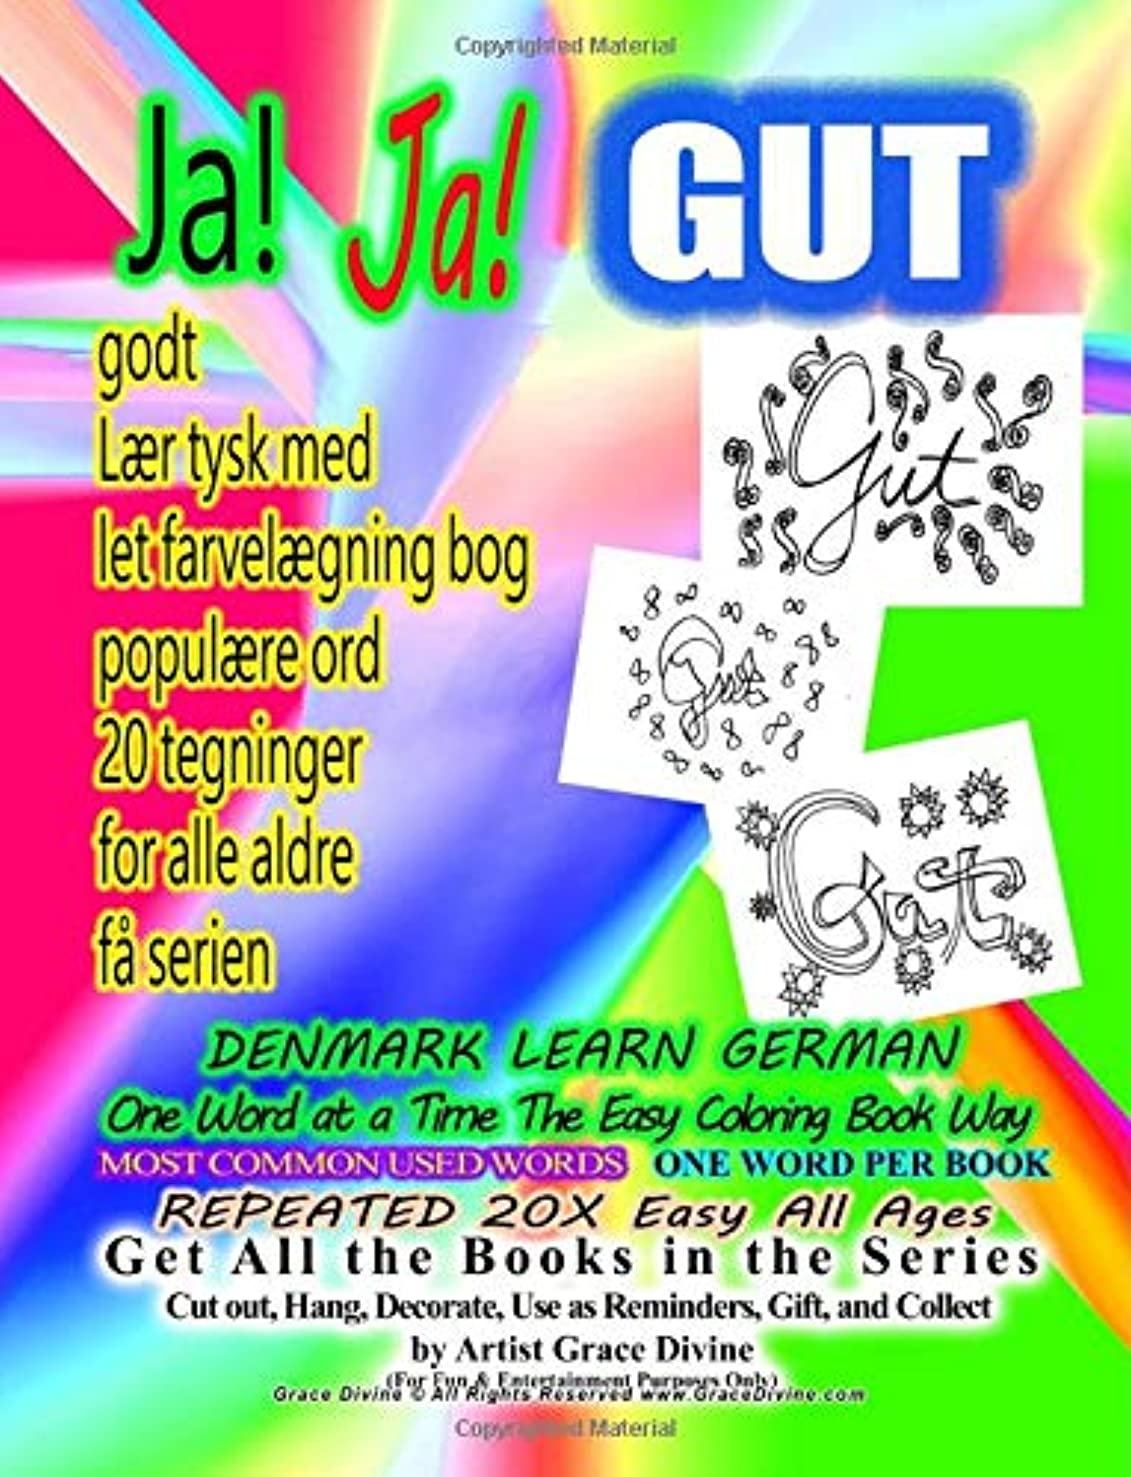 Ja Ja GUT Godt  DENMARK LEARN GERMAN  One Word at a Time The Easy Coloring Book Way MOST COMMON USED WORDS ONE WORD PER BOOK REPEATED 20X EASY ALL ... Entertainment Purposes Only) (German Edition)